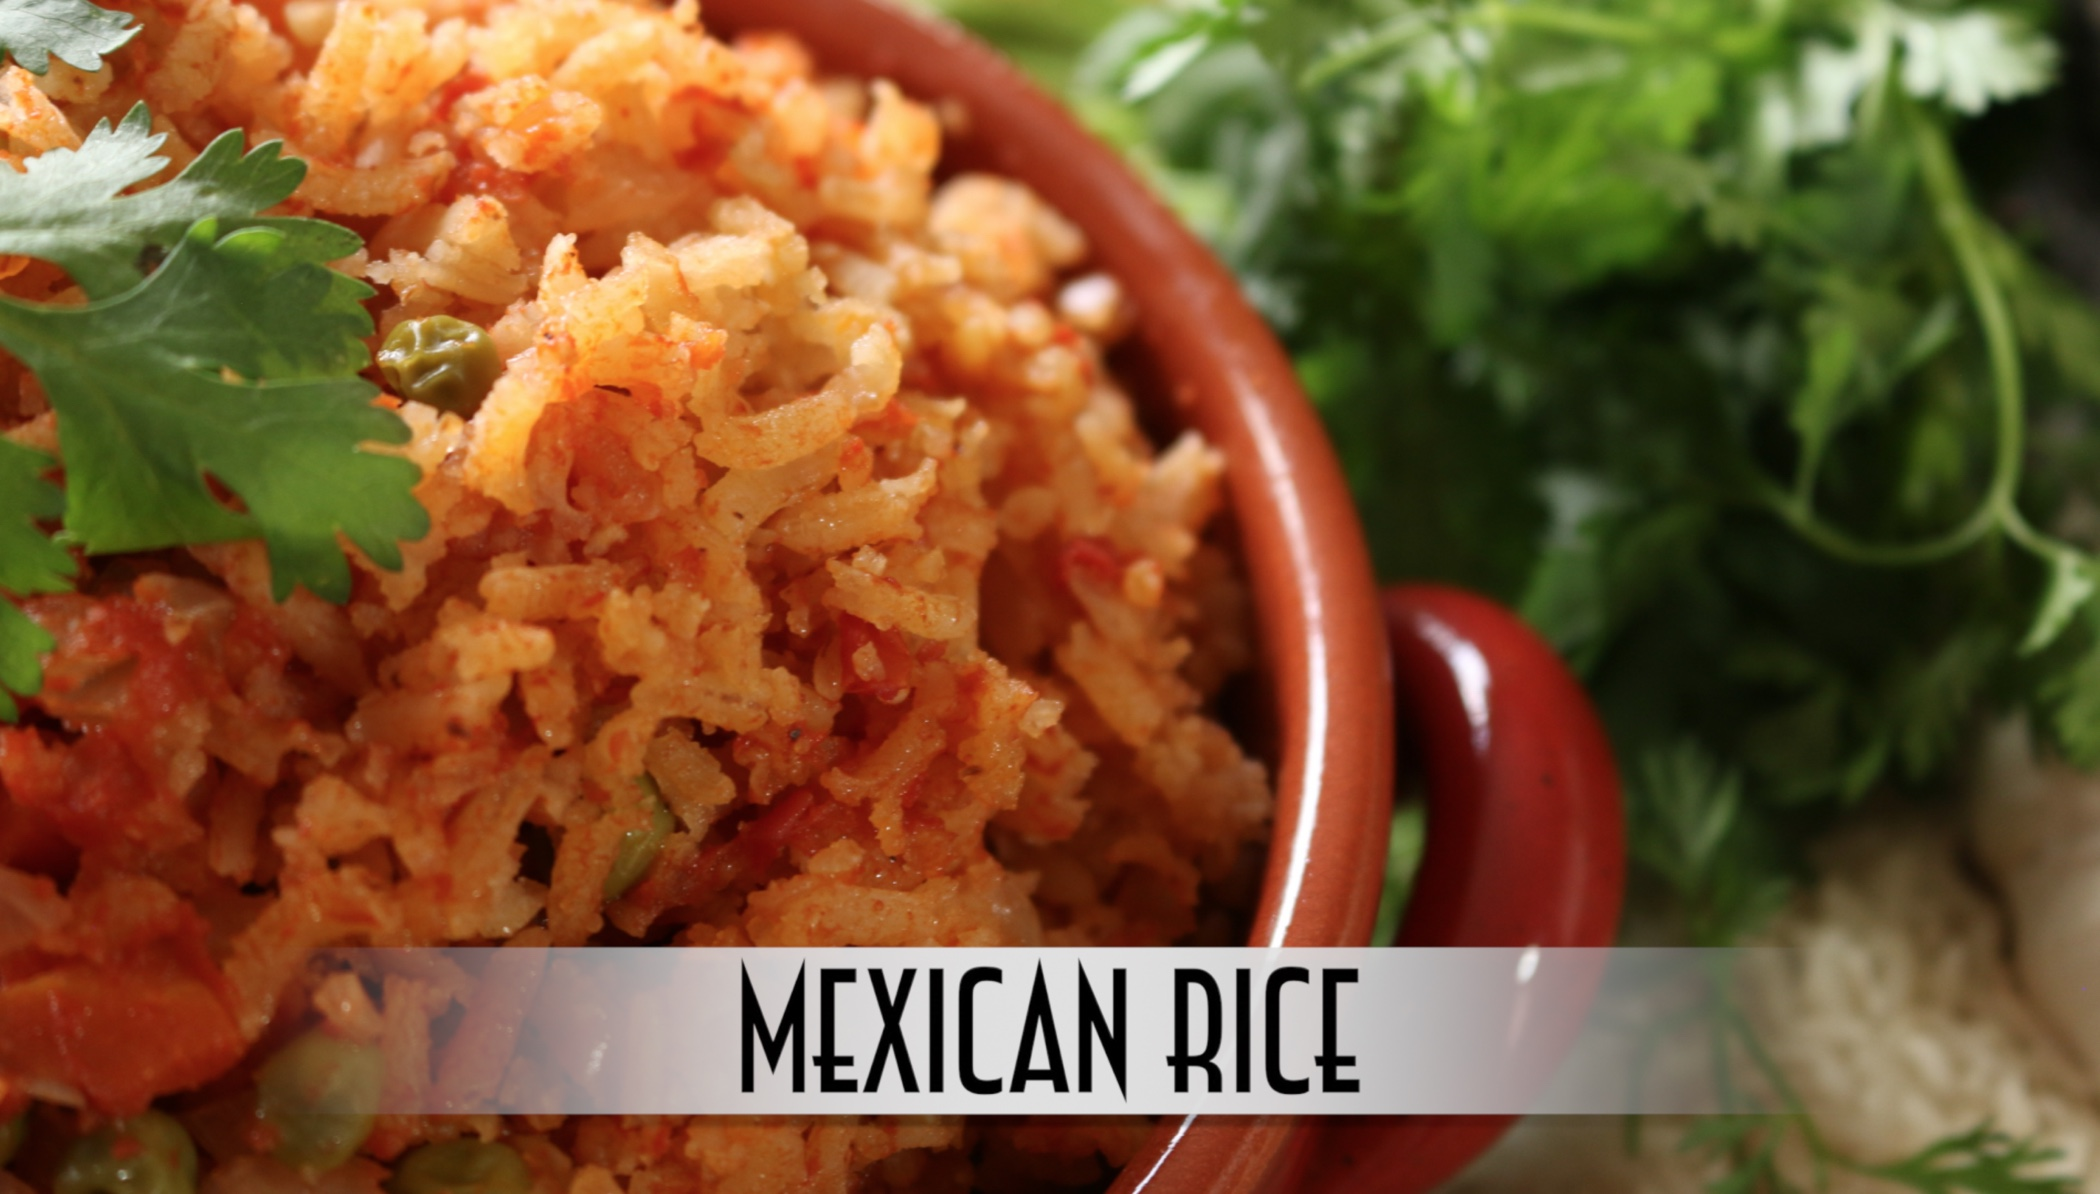 Mexican rice grandmas secret recipe just one bite please mexican rice grandmas secret recipe forumfinder Image collections